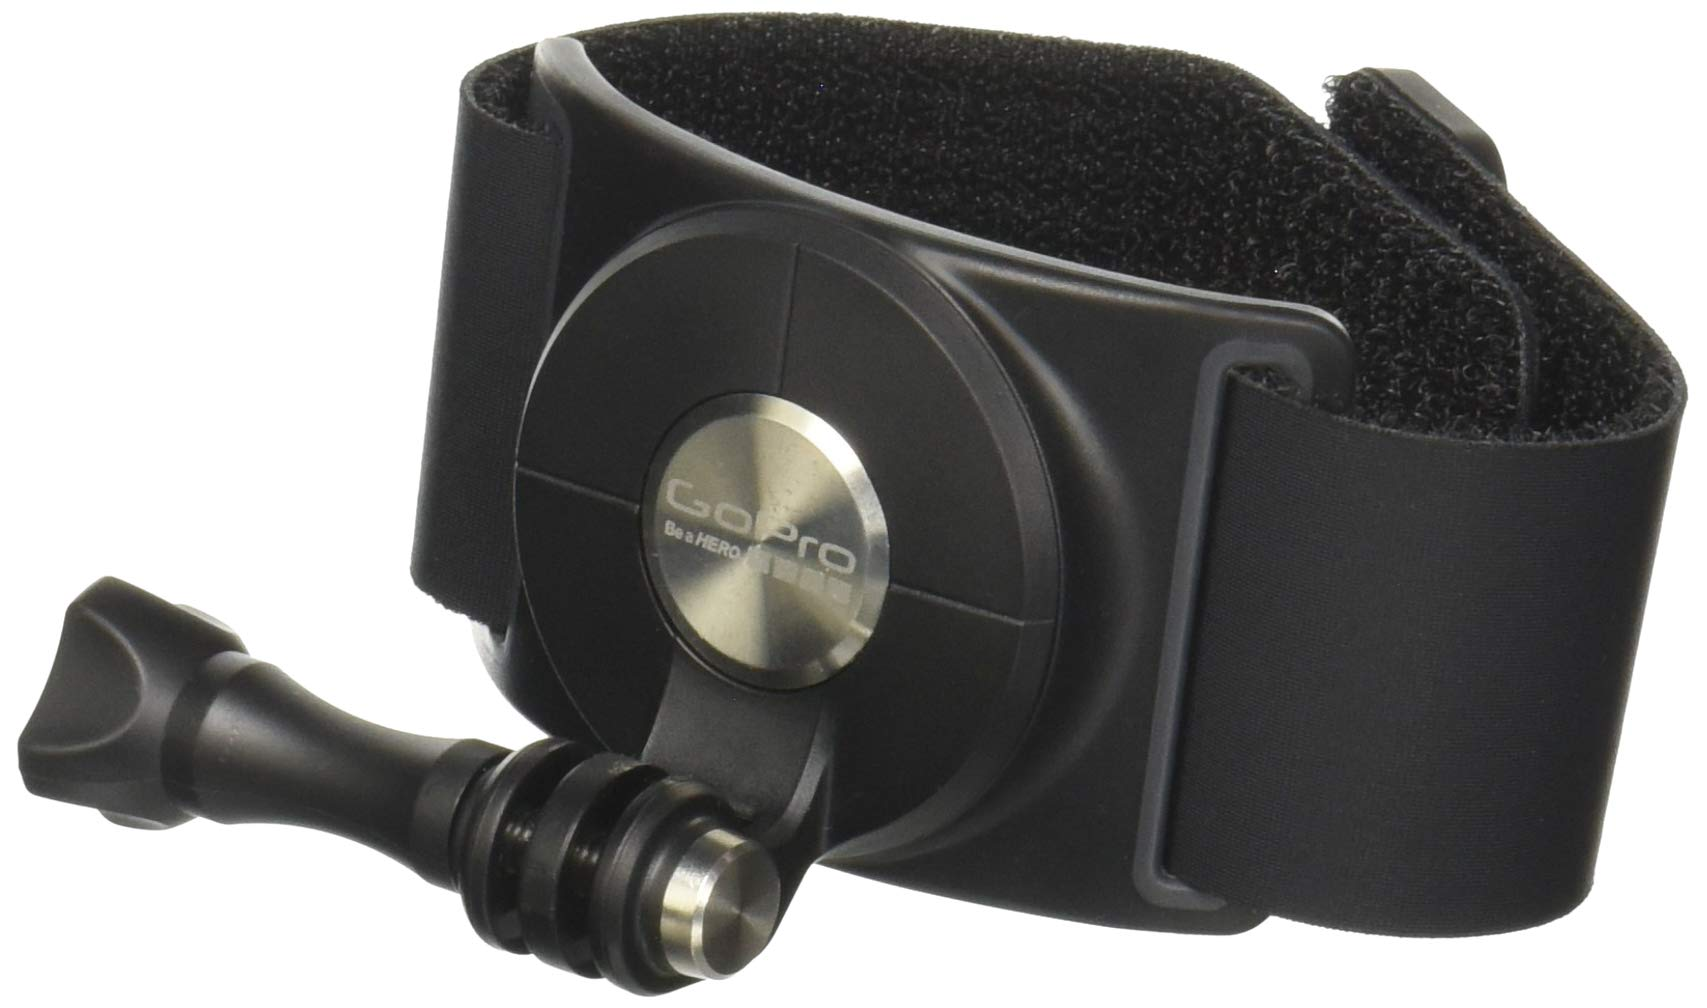 GoPro Hand + Wrist Strap (All GoPro Cameras) - Official GoPro Mount by GoPro